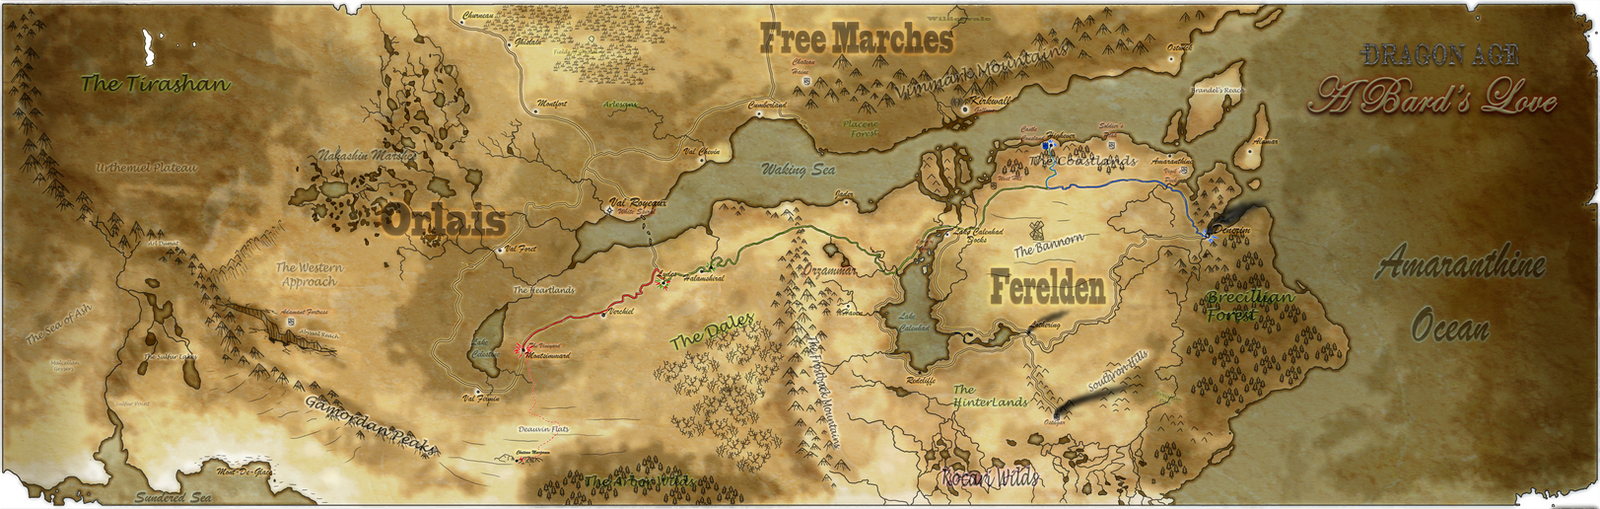 Dragon Age: A Bard\'s Love Map HE1- O11 by Guyver89 on DeviantArt